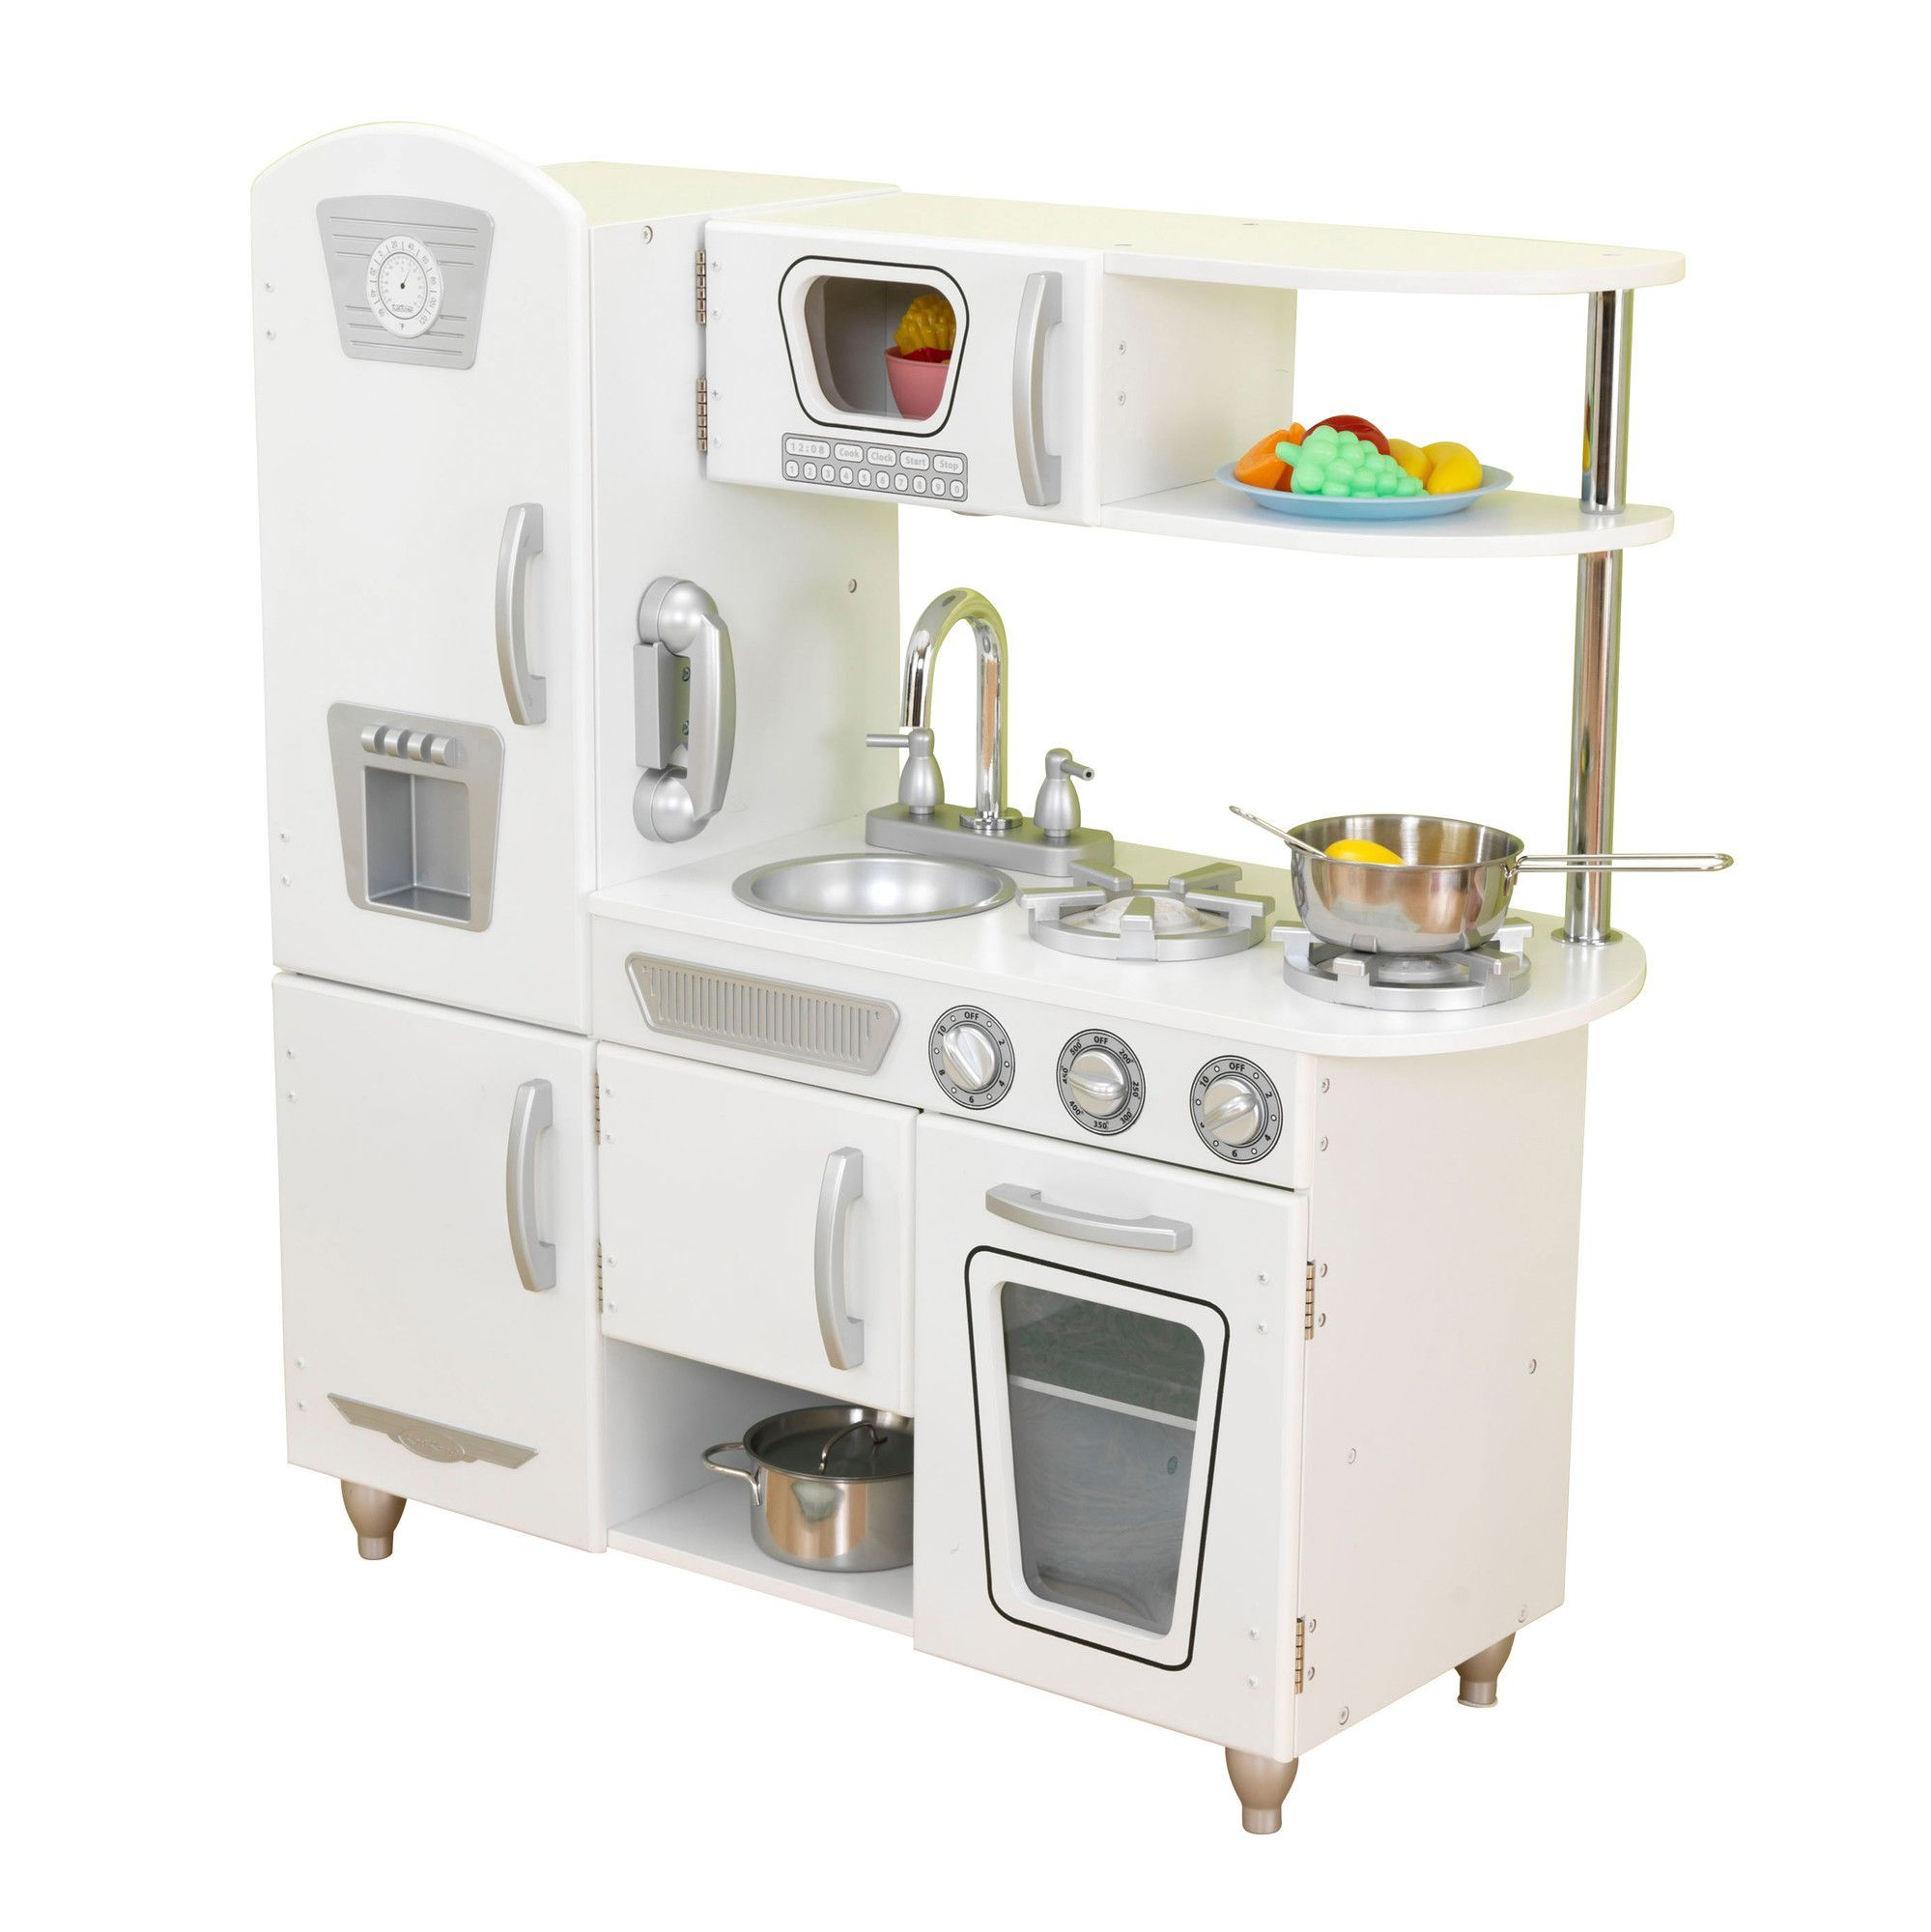 Features product type kitchen set color white primary material wood age group 3 to 4 years 5 to 6 years 7 to 8 years 9 to 10 years 11 to 12